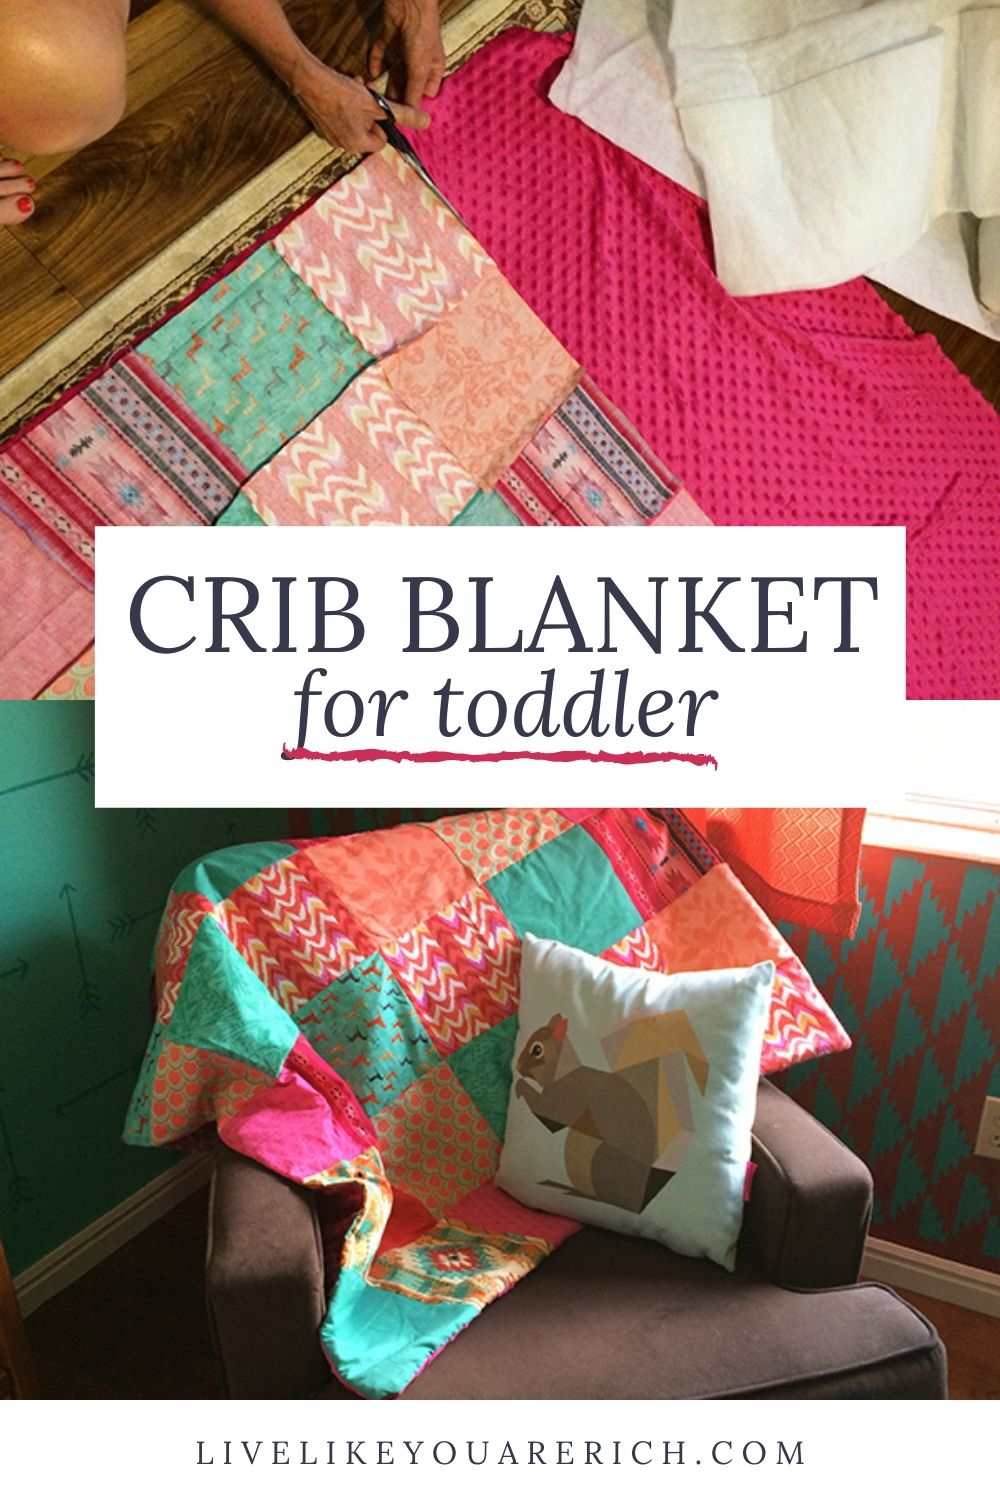 For both my son's and daughter's nurseries I've wanted to make custom crib blankets to match the color scheme, theme, and decor. I've been very happy with the crib/toddler blanket I made for my son so I wanted to make a very similar one for my daughter. So I'm sharing how I complete the project.